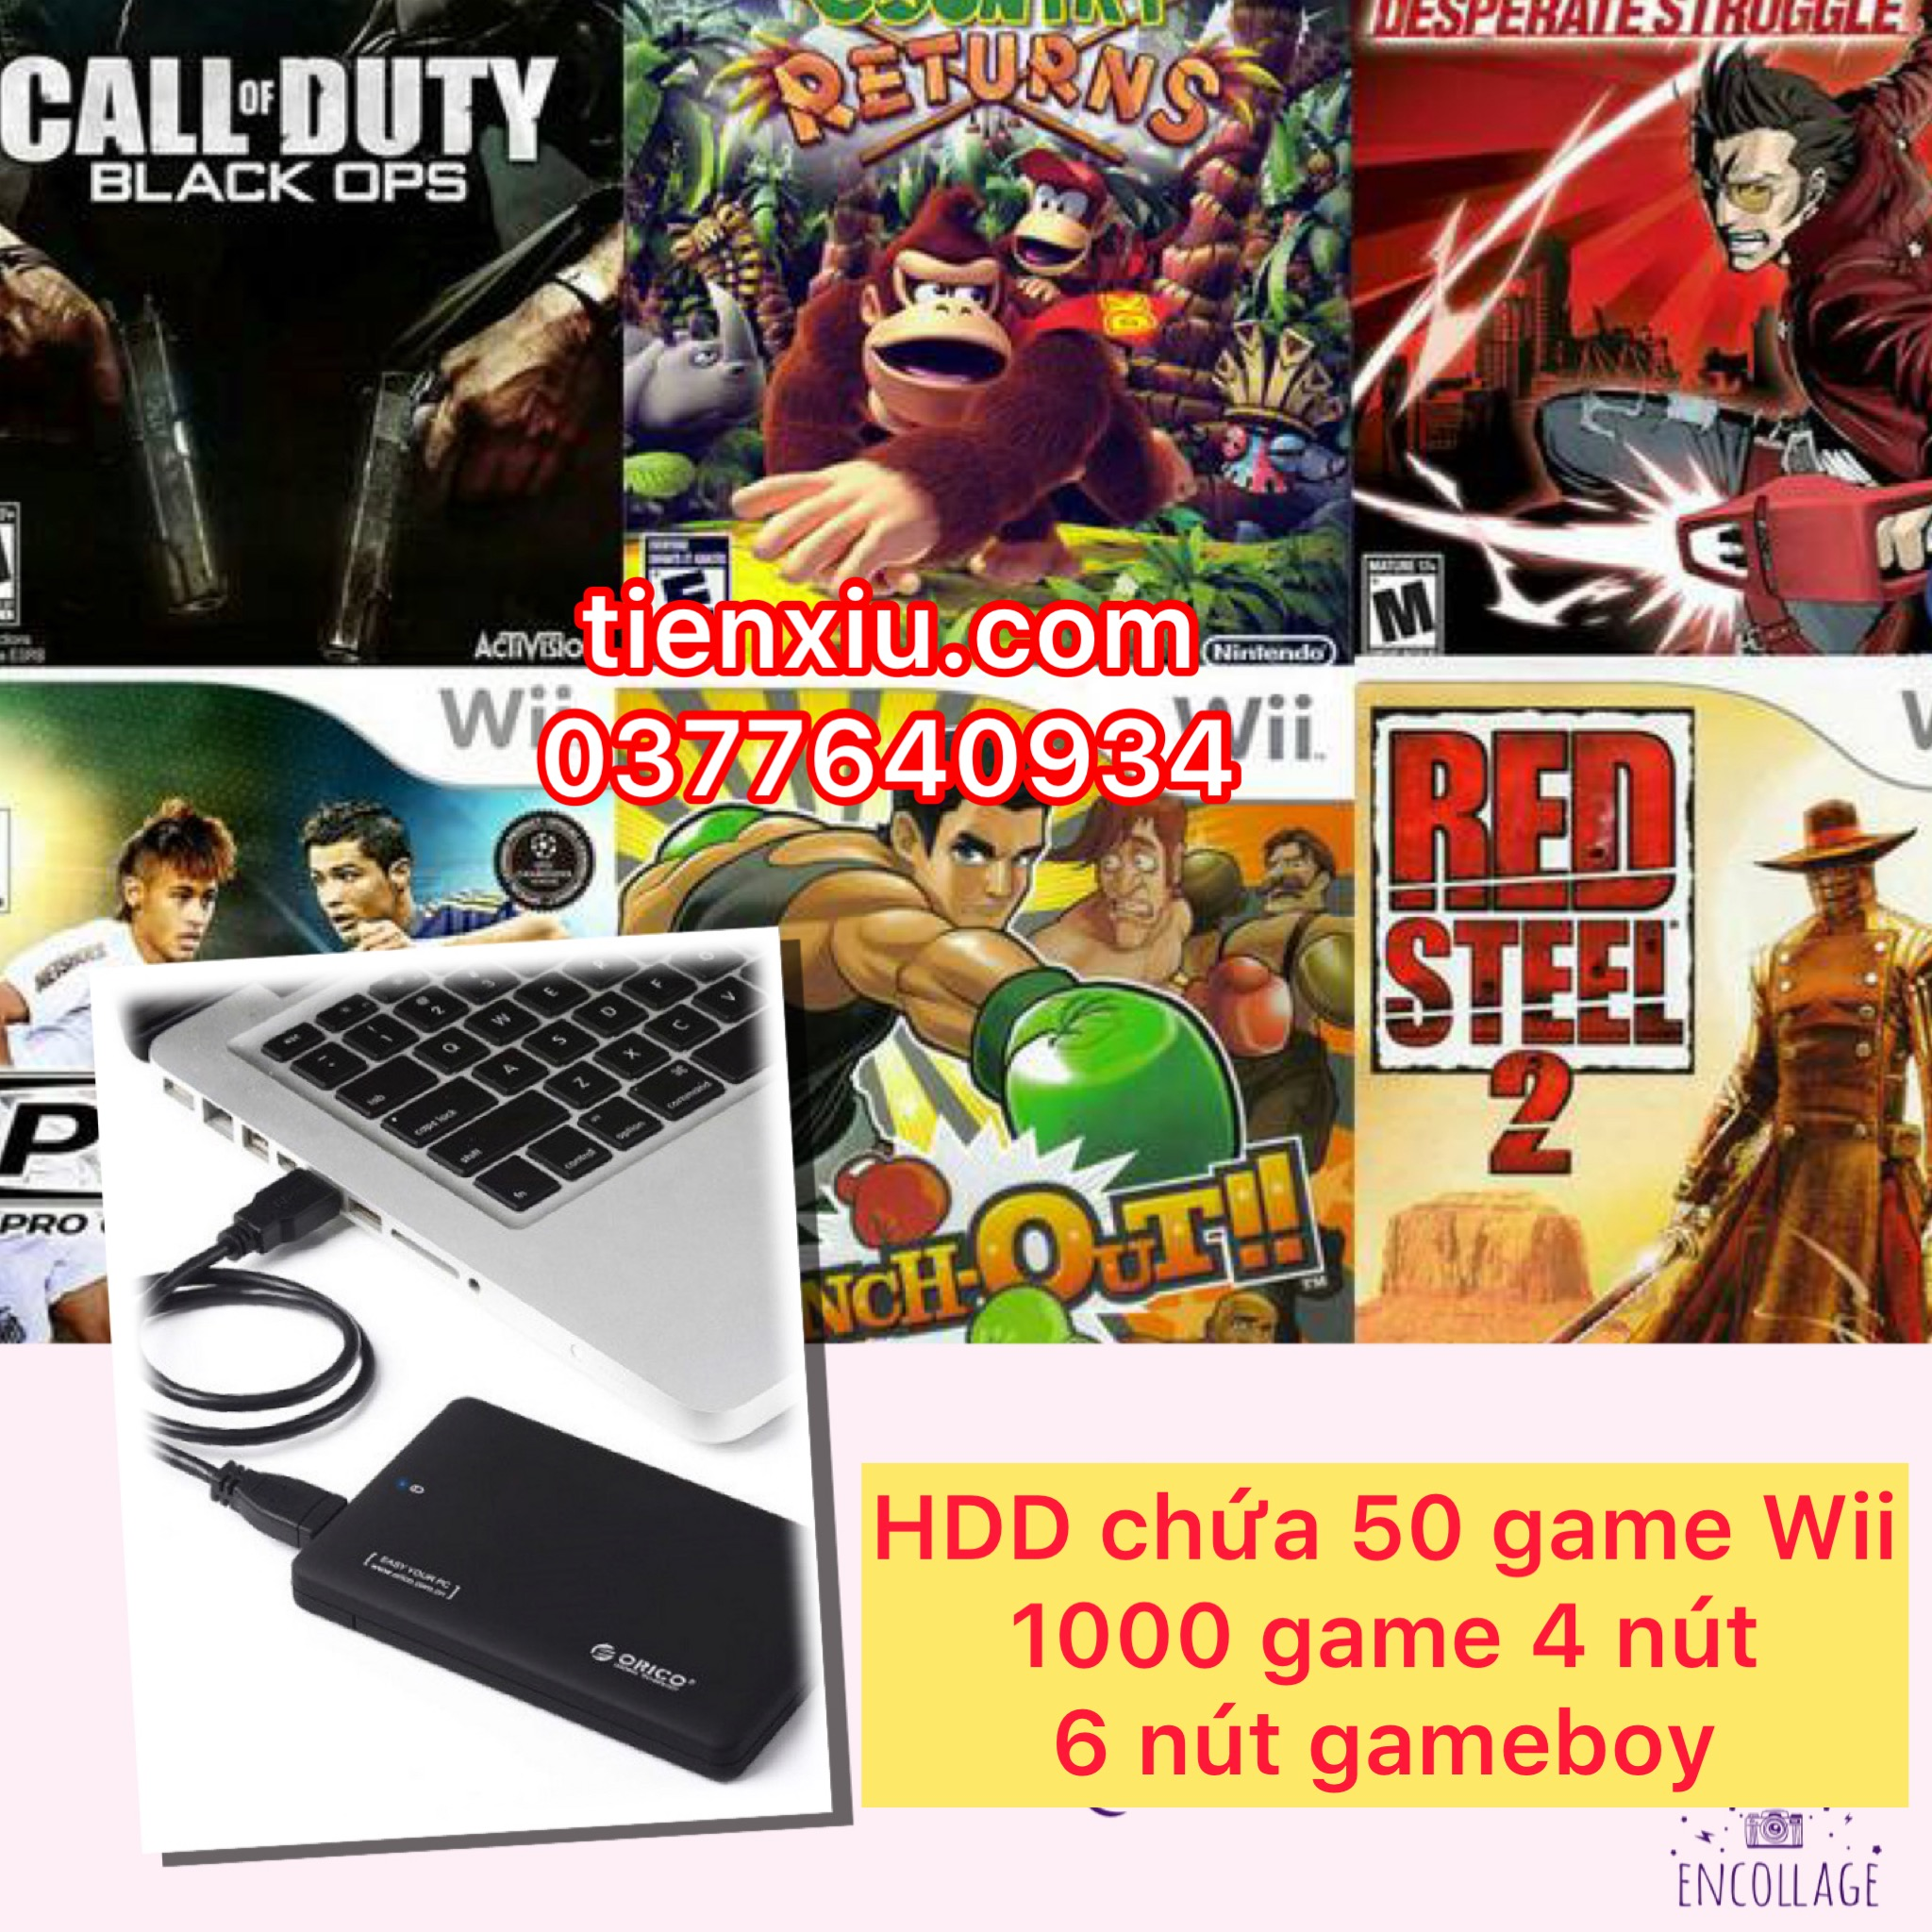 ổ cứng HDD game Wii chứa game wii 4 nút 6 nút gameboy